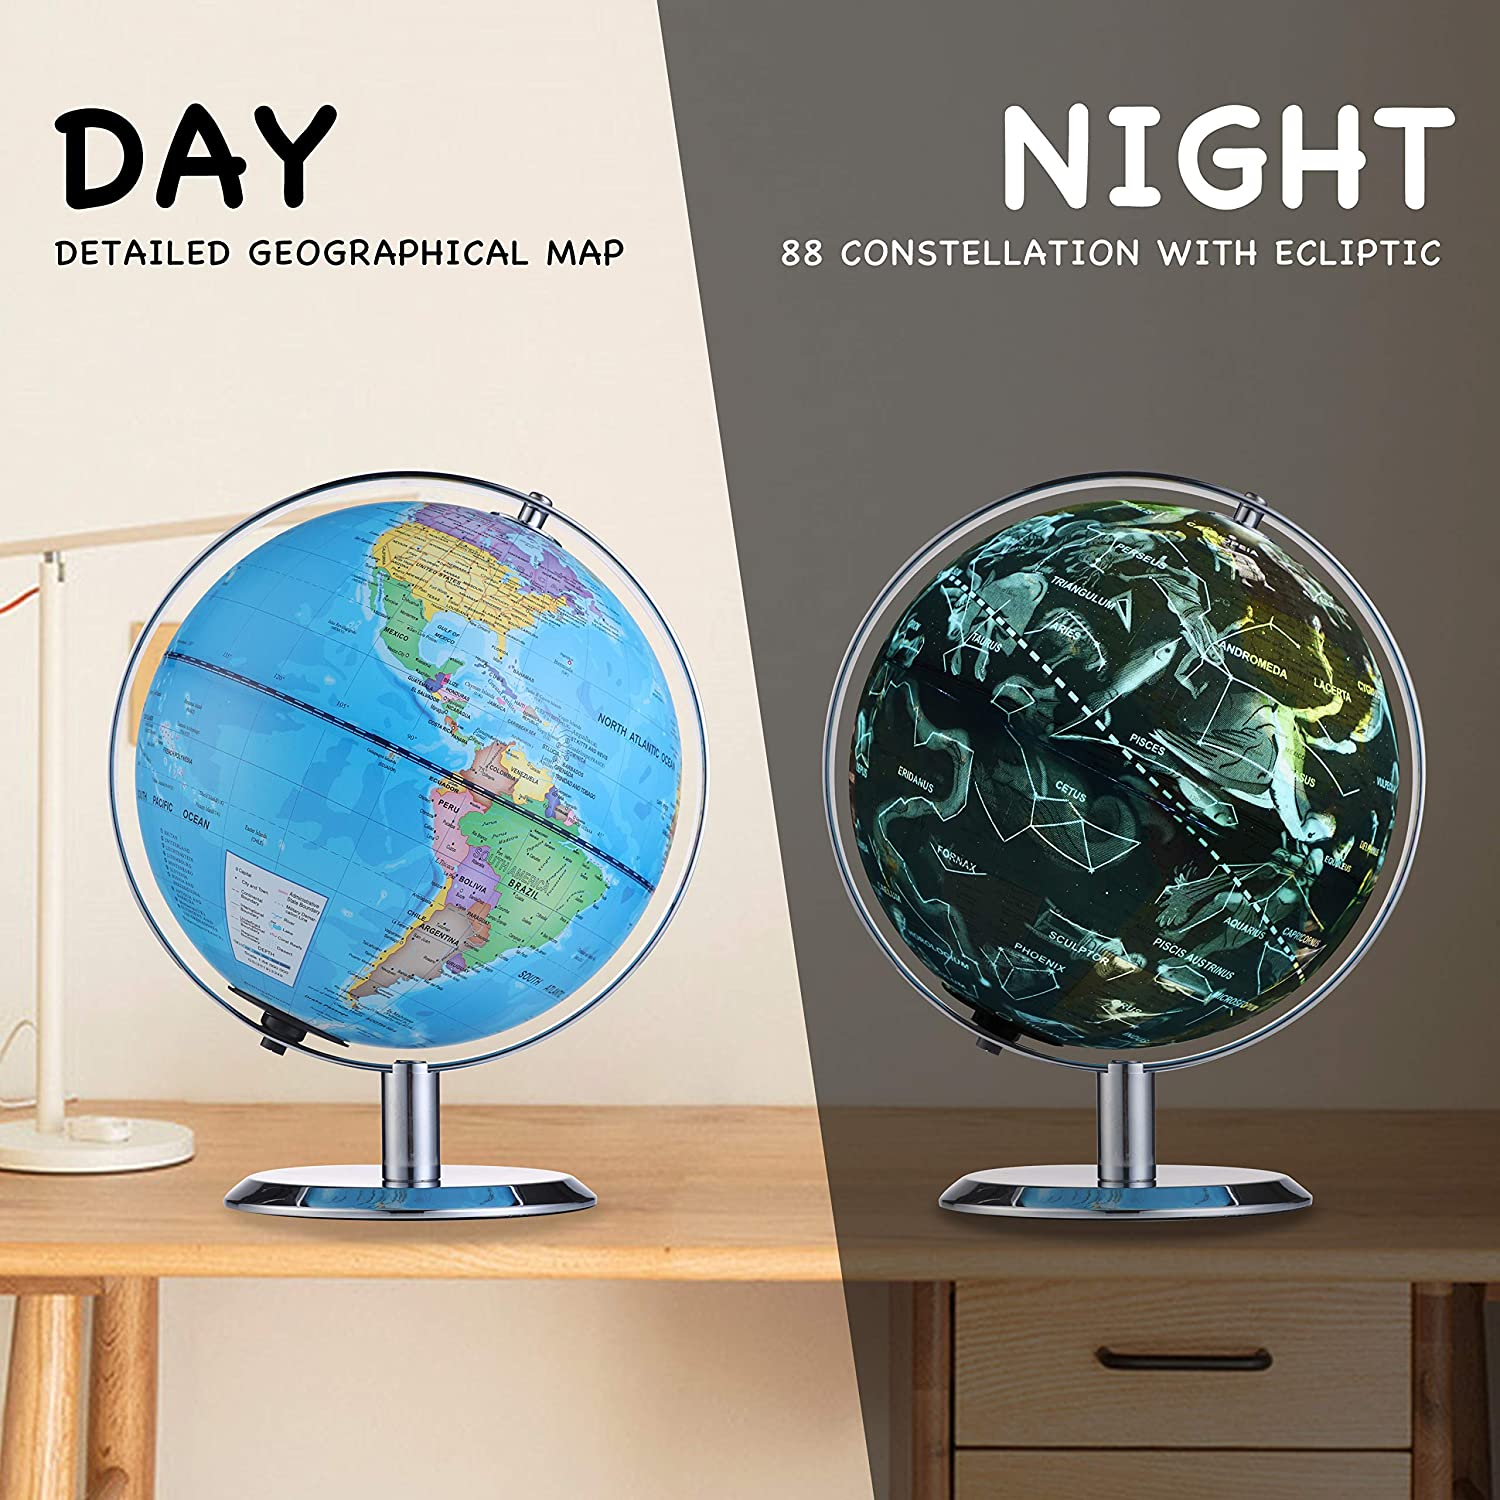 Rose Gold Anti-Fall Globe with Silver Plated Stand Globe for Kids 8 Inch Illuminated Led 3 in 1 Desktop Geographic Constellation Educational Discovery World Map Globes for School Child Adults